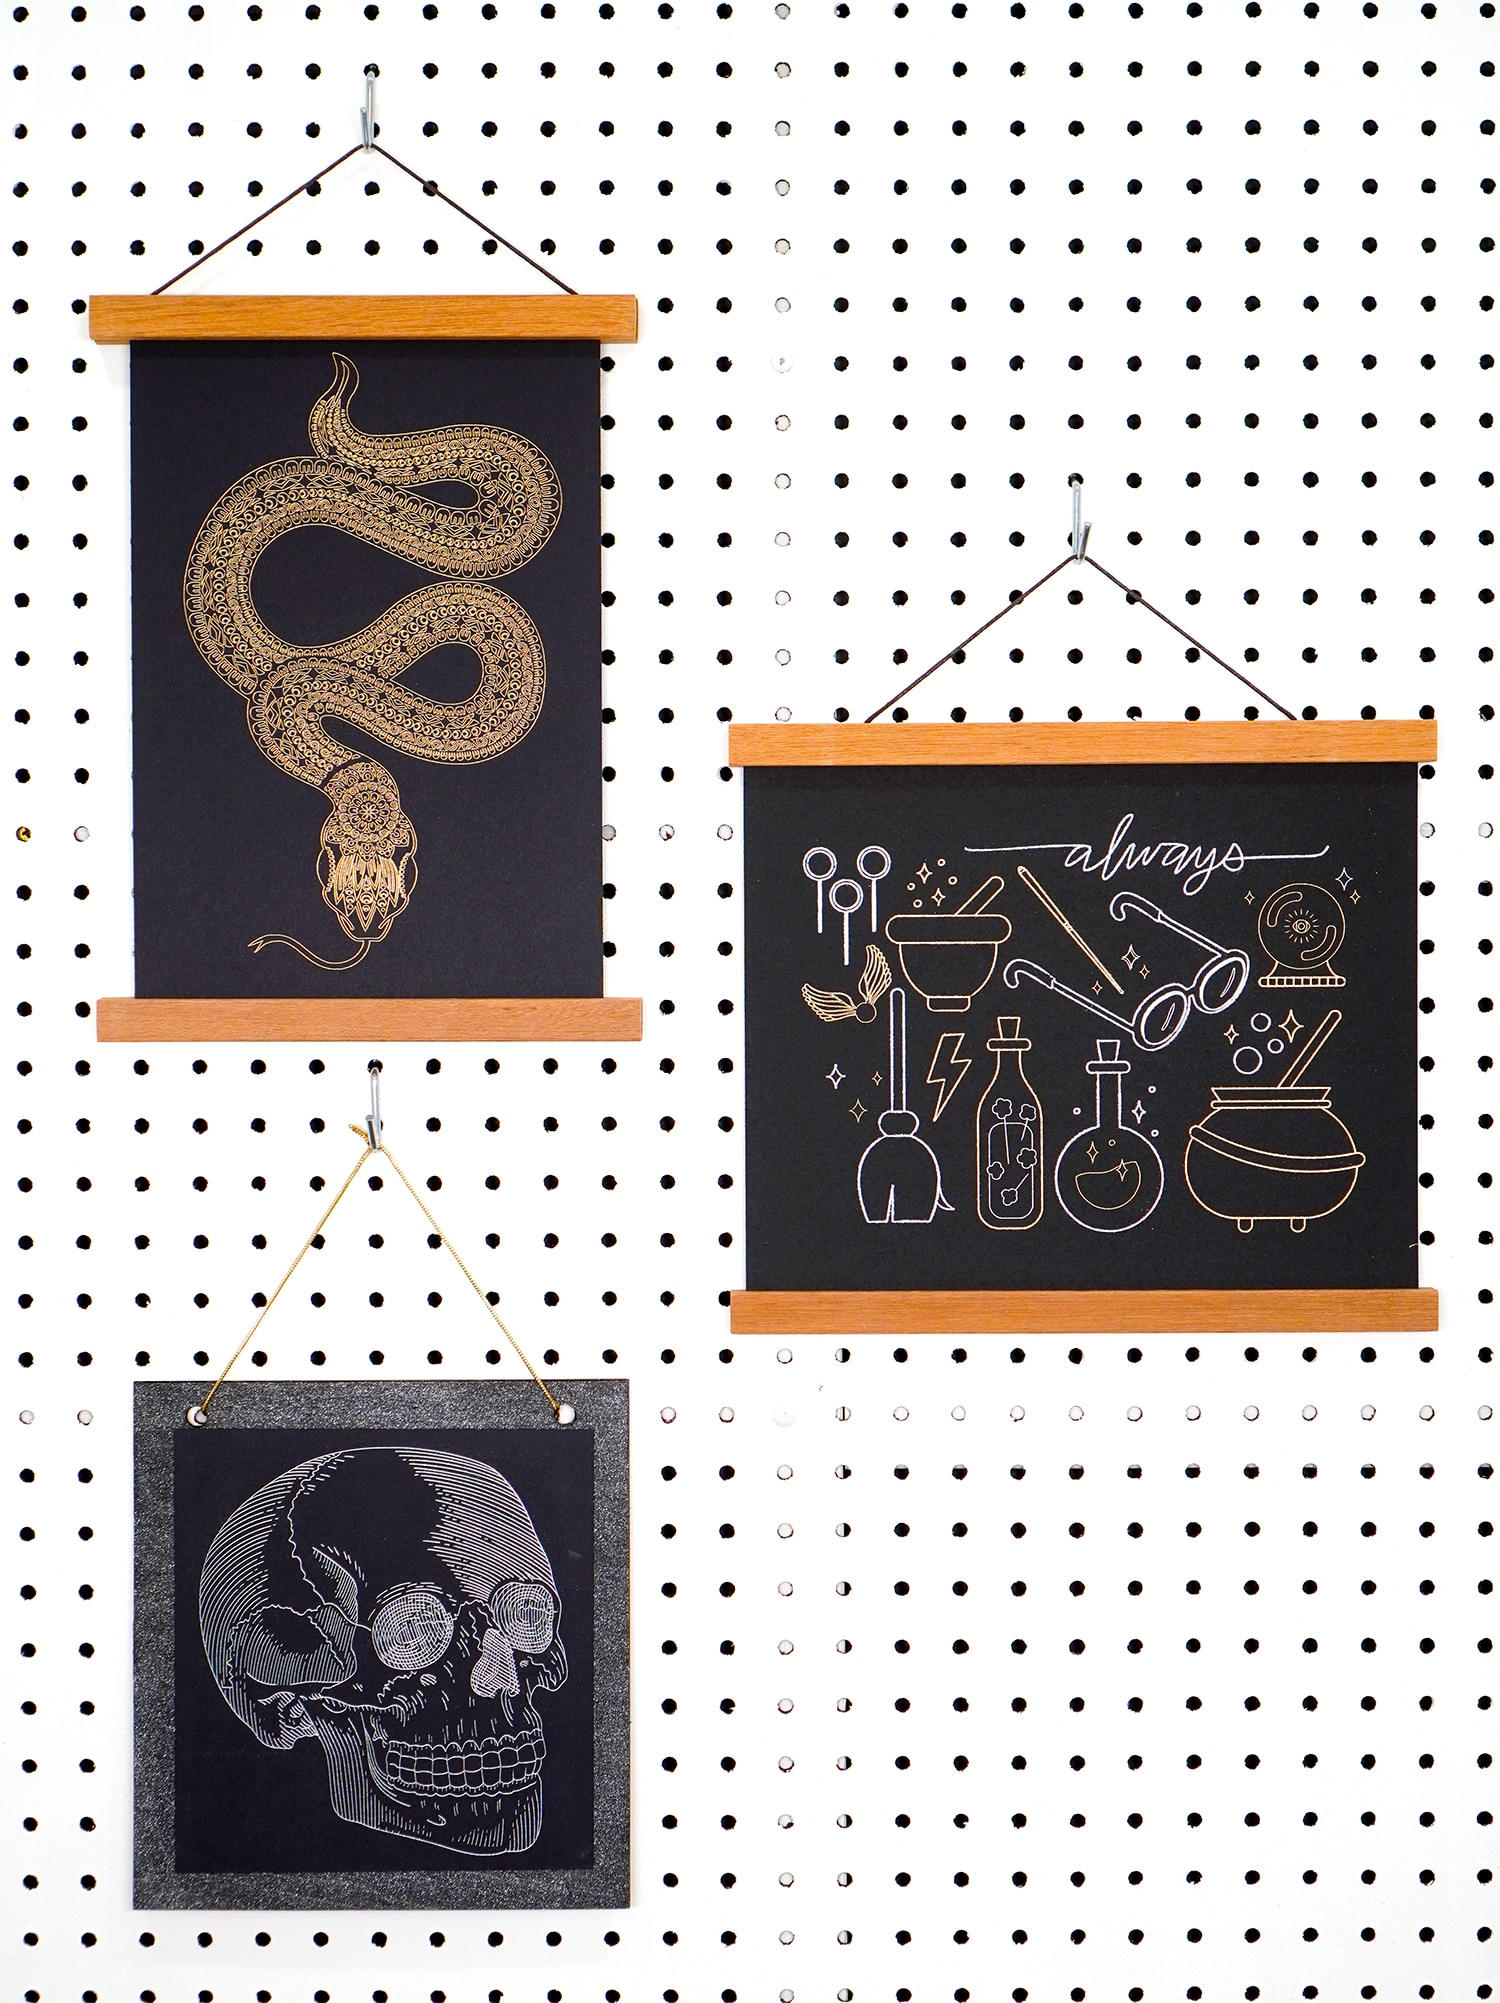 Gold and silver foil art prints (snake, skull, and wizardry) hanging on white pegboard